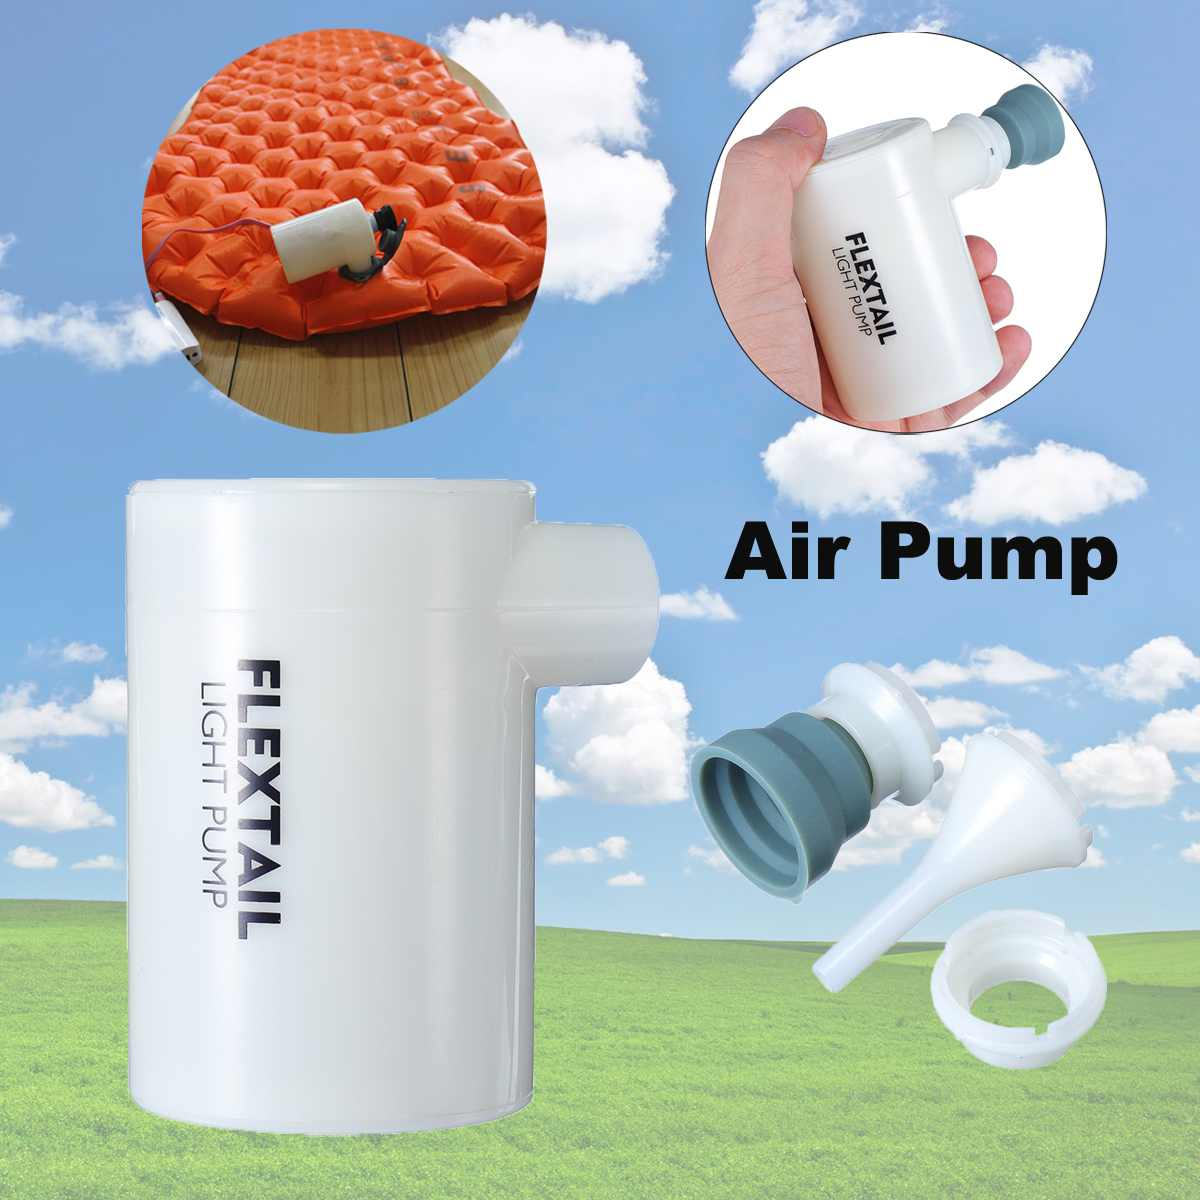 USB Electric Air Pump Outdoor Camping Inflate Deflate Pump Mini Ultralight Portable Swimming Pool Air Bed Mattress Boat Air Pump